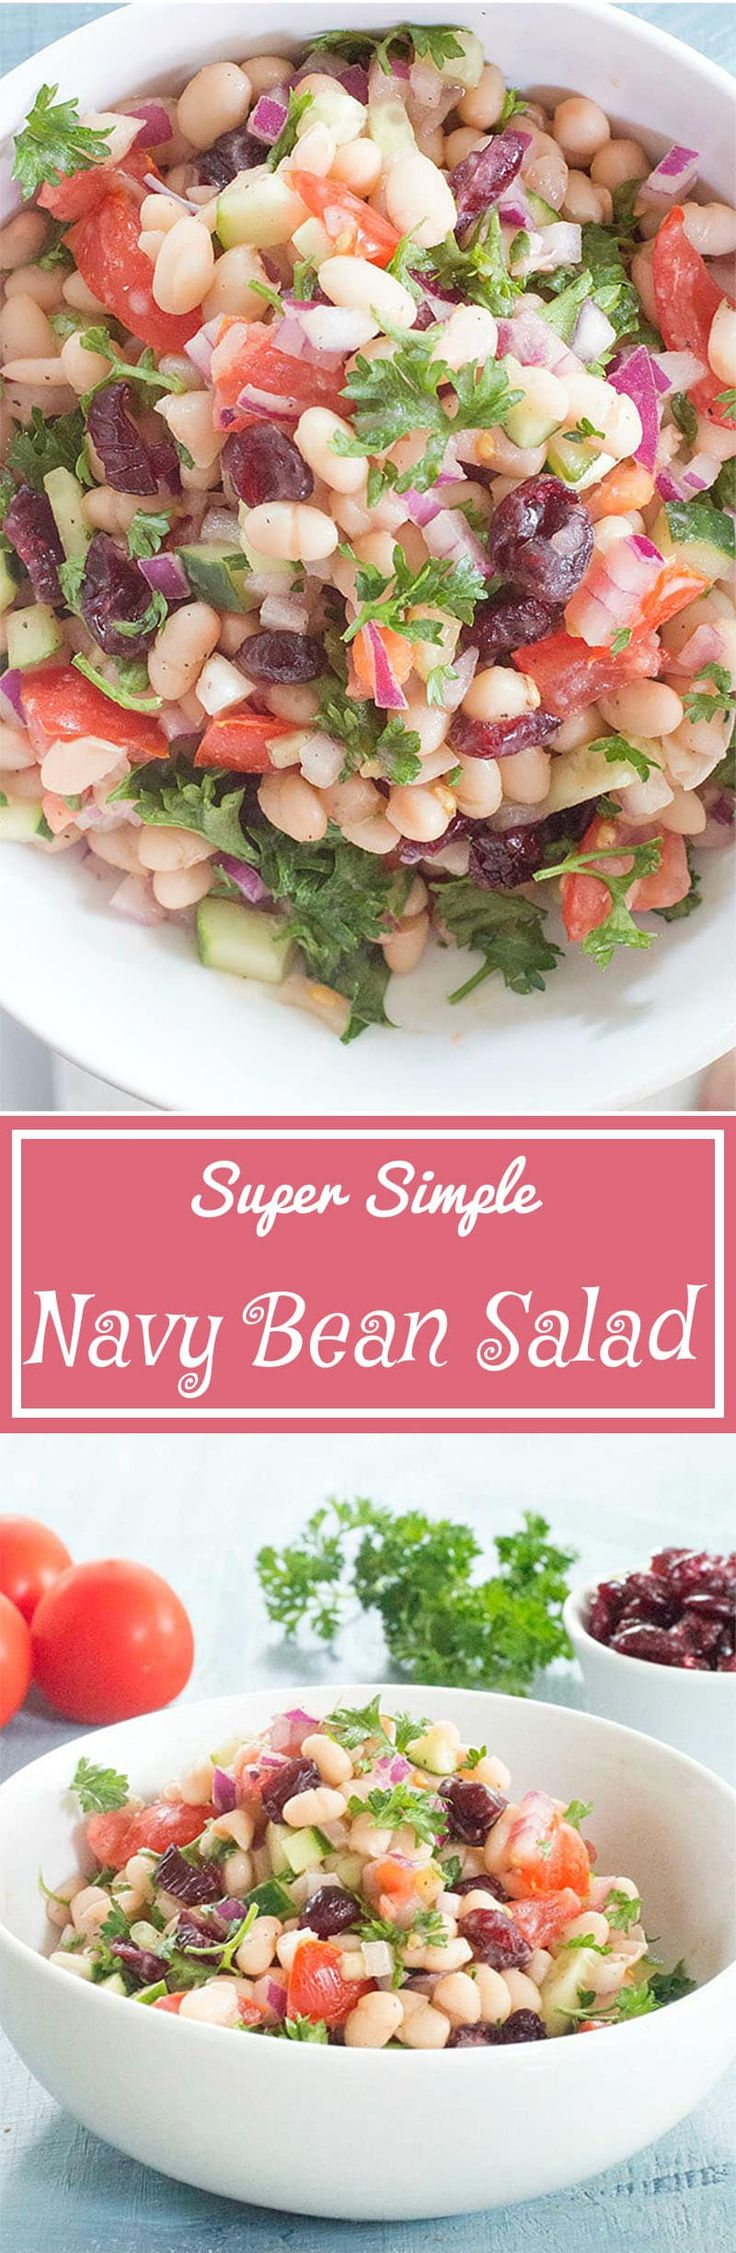 Looking for salad recipes that also counts as vegan recipes? Navy Beans Salad is very healthy, quick salad idea. Made with Parsley & all healthy ingredients | Picnic food Vegan salads Healthy salads bean salad Cranberry recipes holiday recipes vegetarian recipes holiday vegetarian recipes Vegan vegetarian thanksgiving